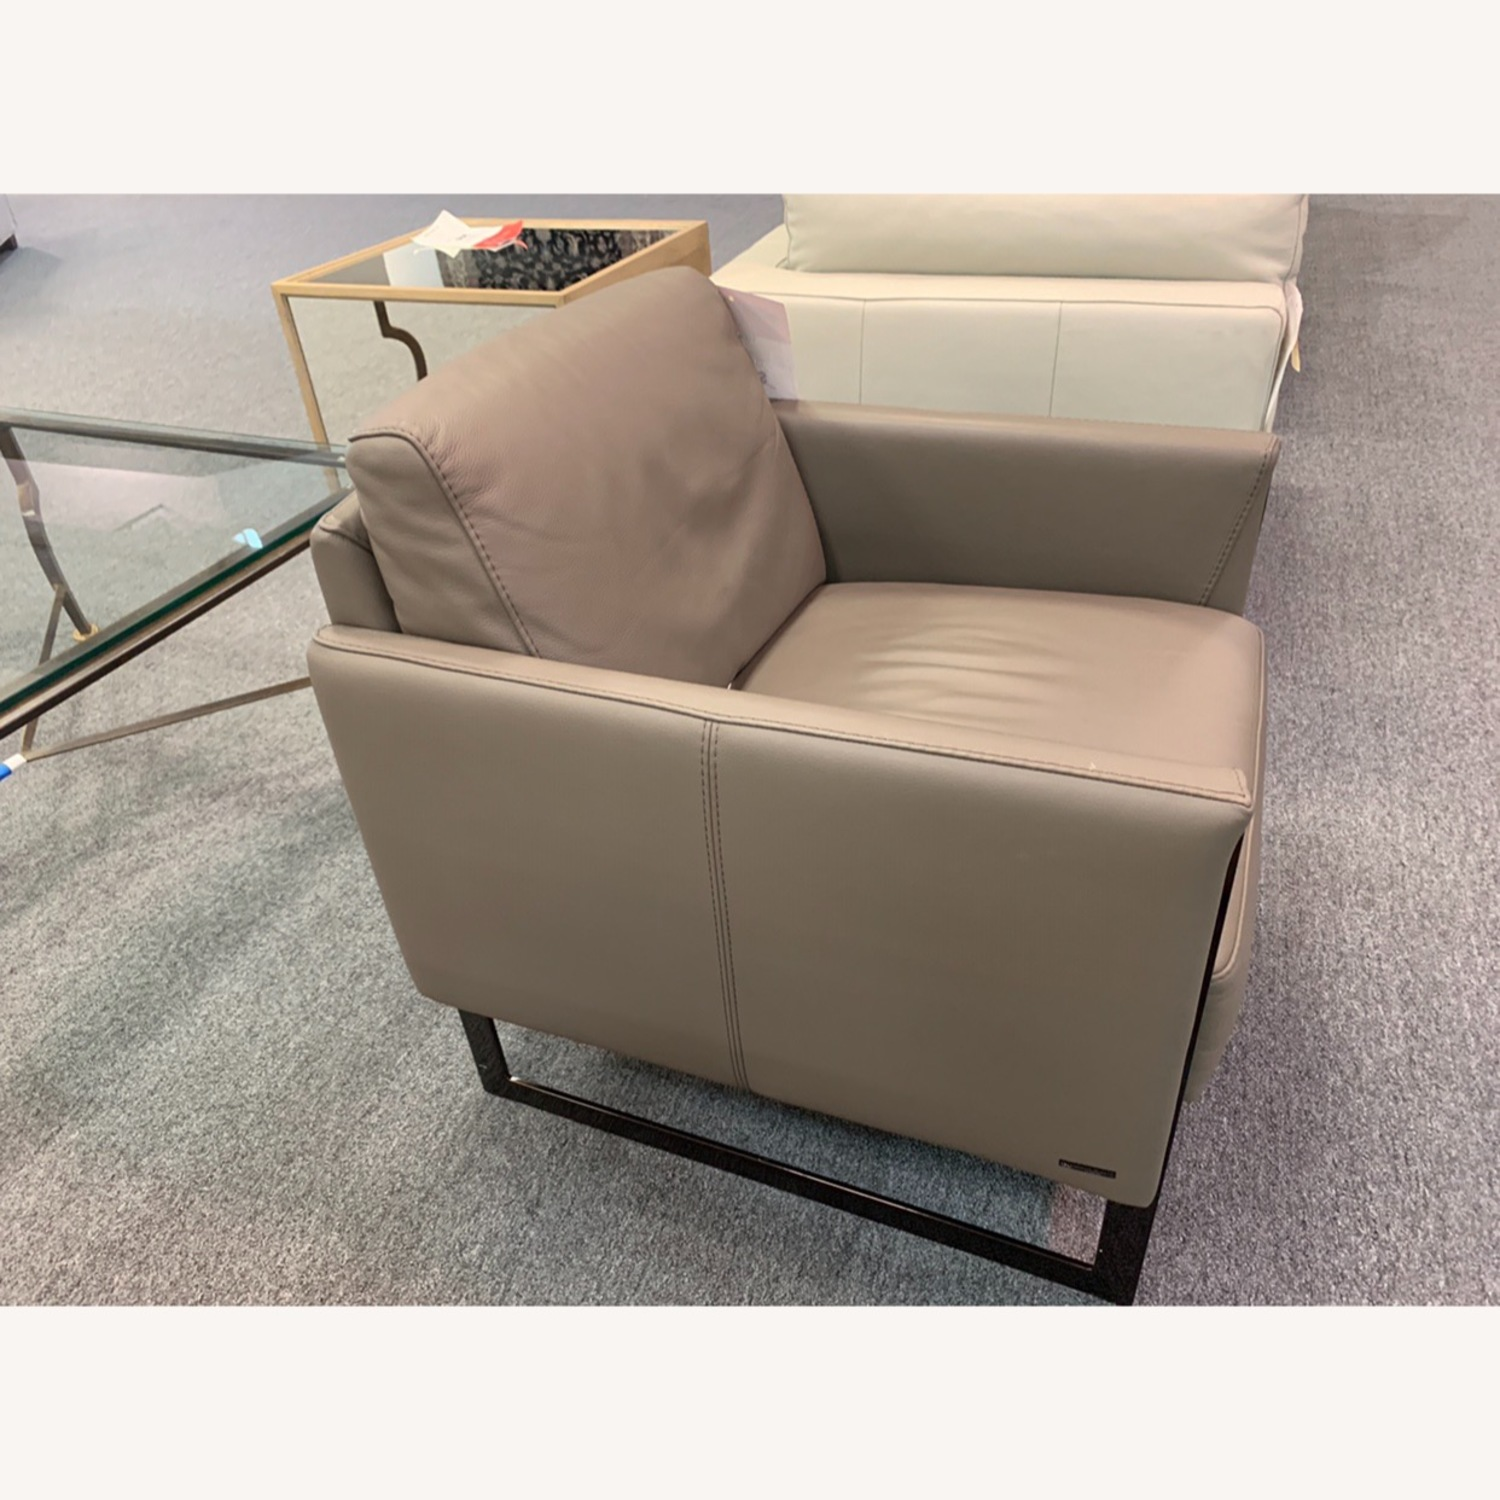 Nicoletti Vincent Leather Sectional Sofa - image-6